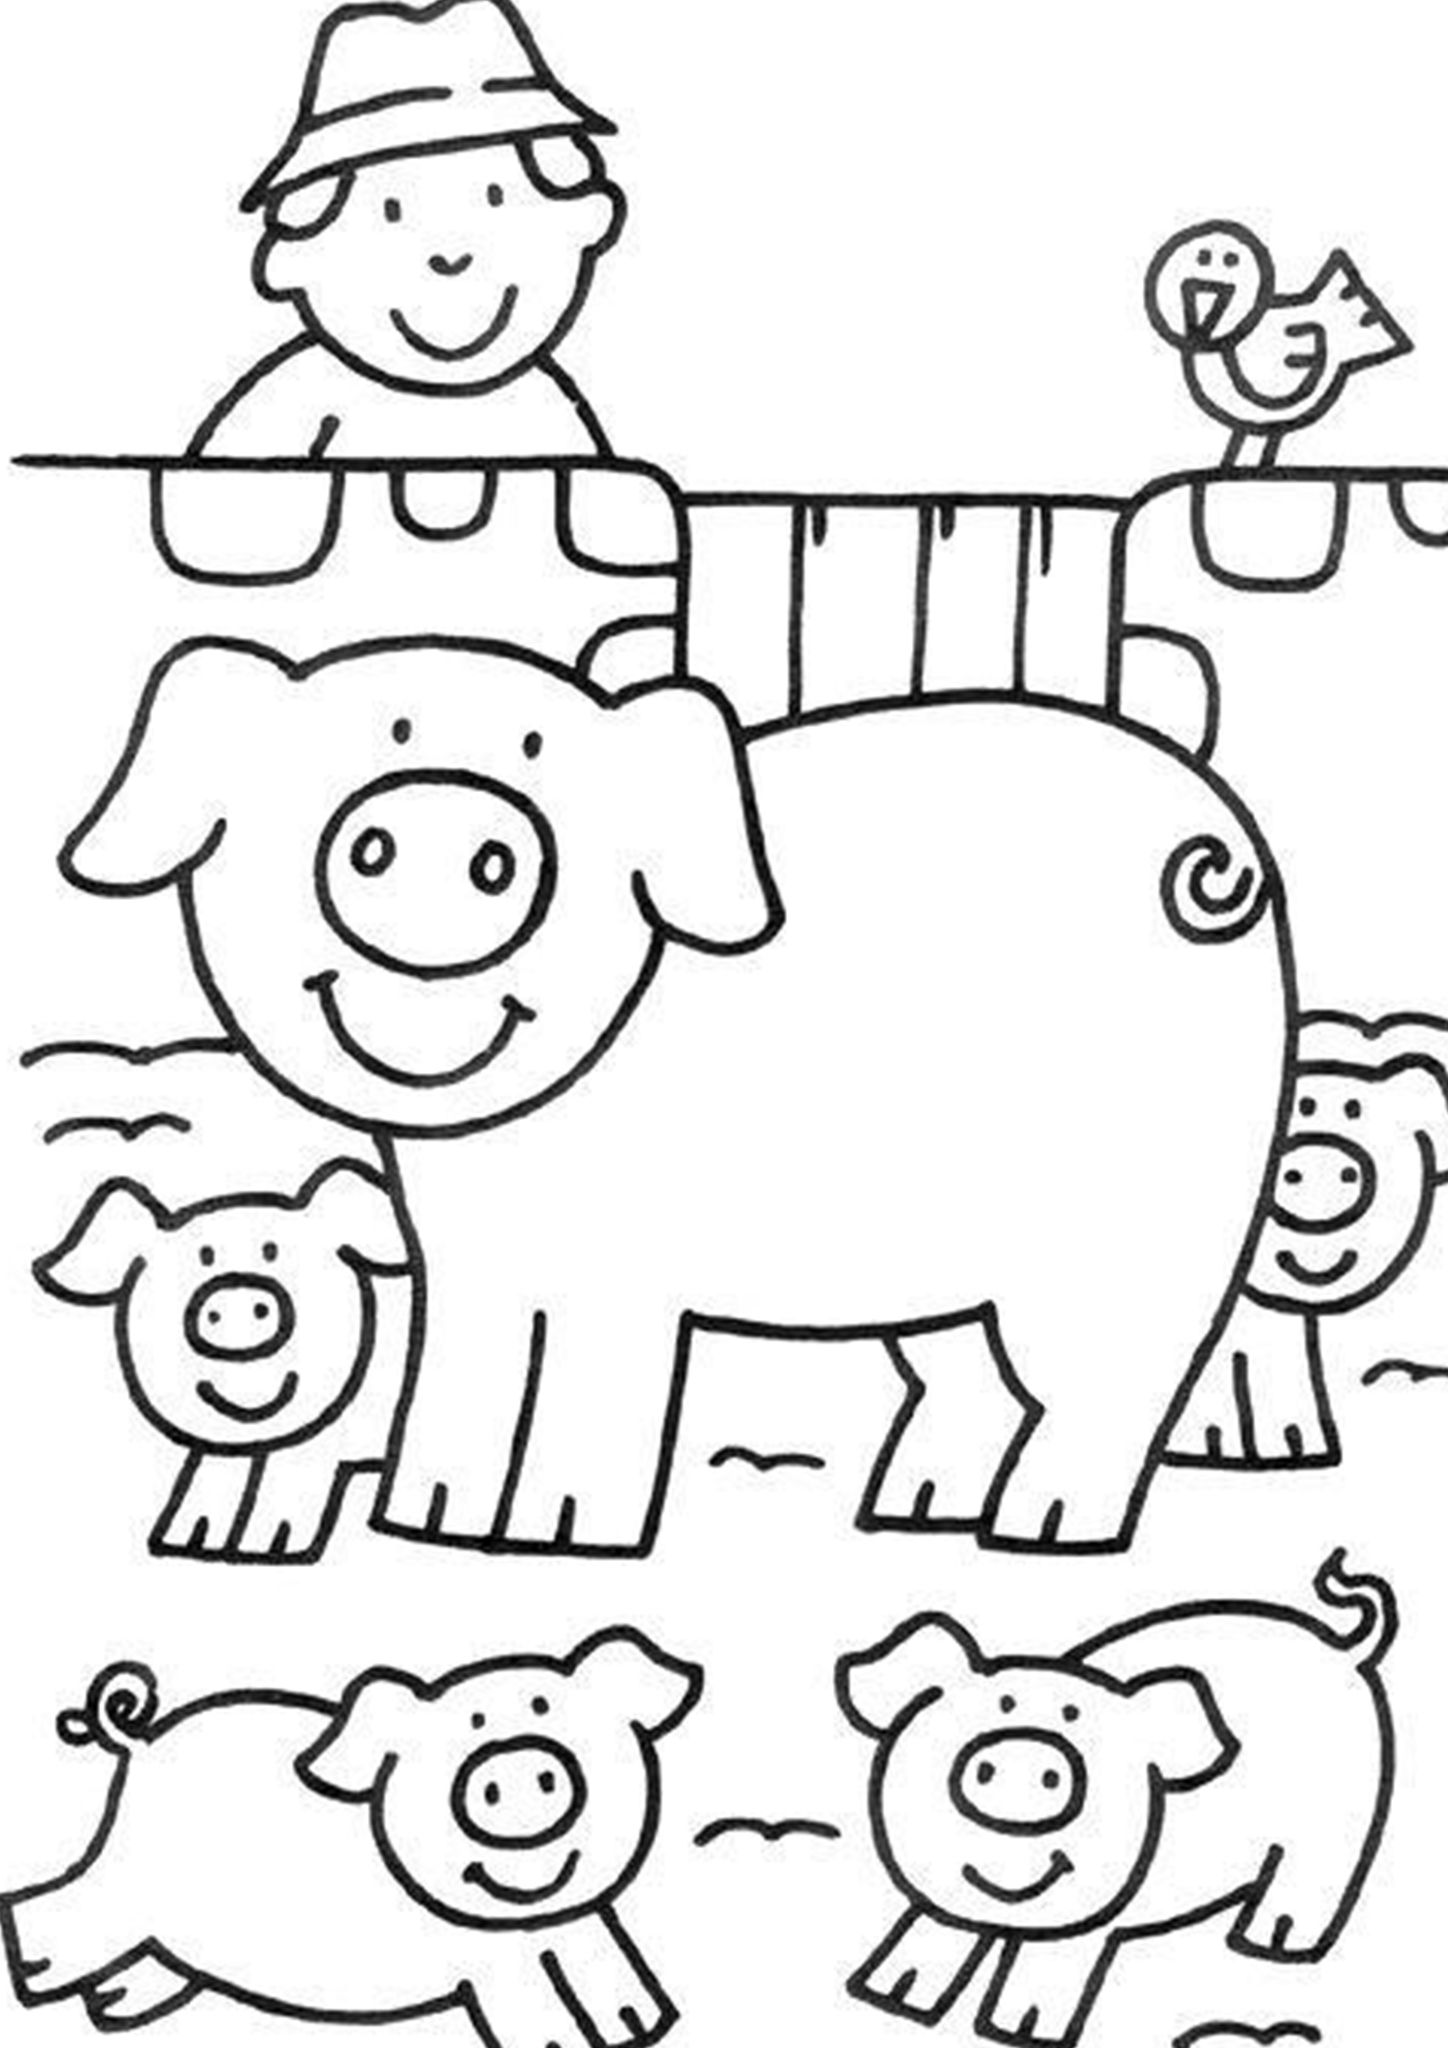 Free Easy To Print Farm Coloring Pages Farm Animal Coloring Pages Farm Coloring Pages Coloring Pages